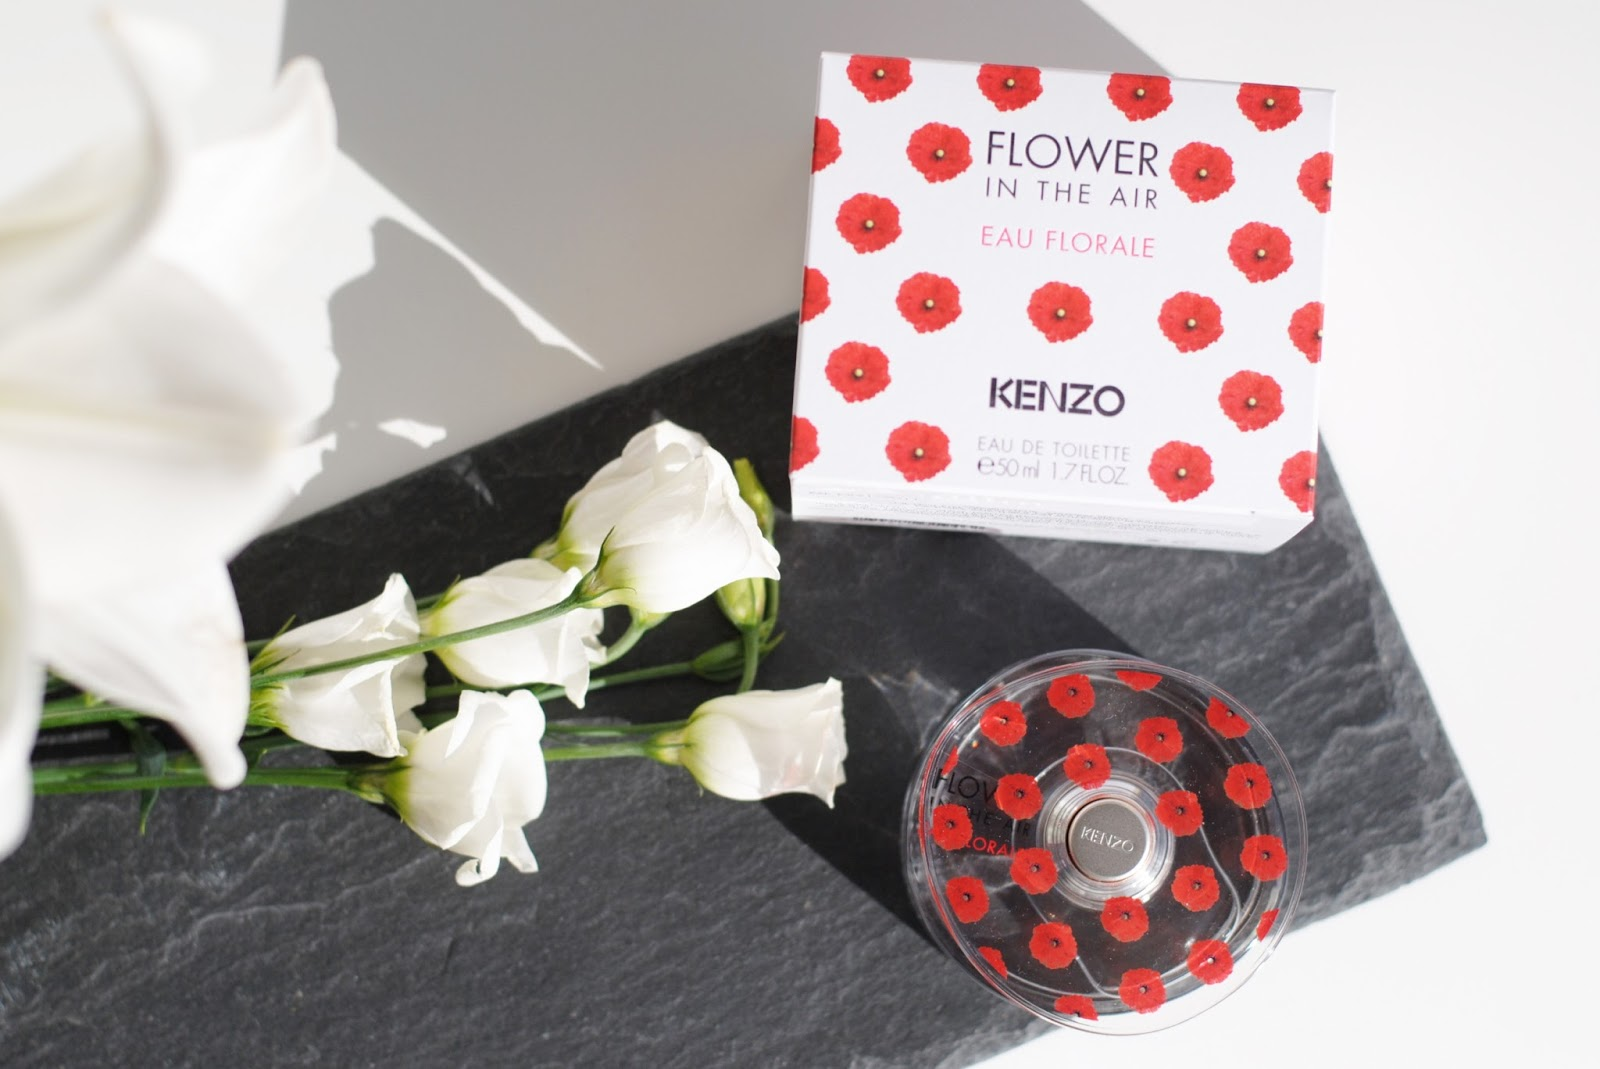 kenzo flower in the air eau floral